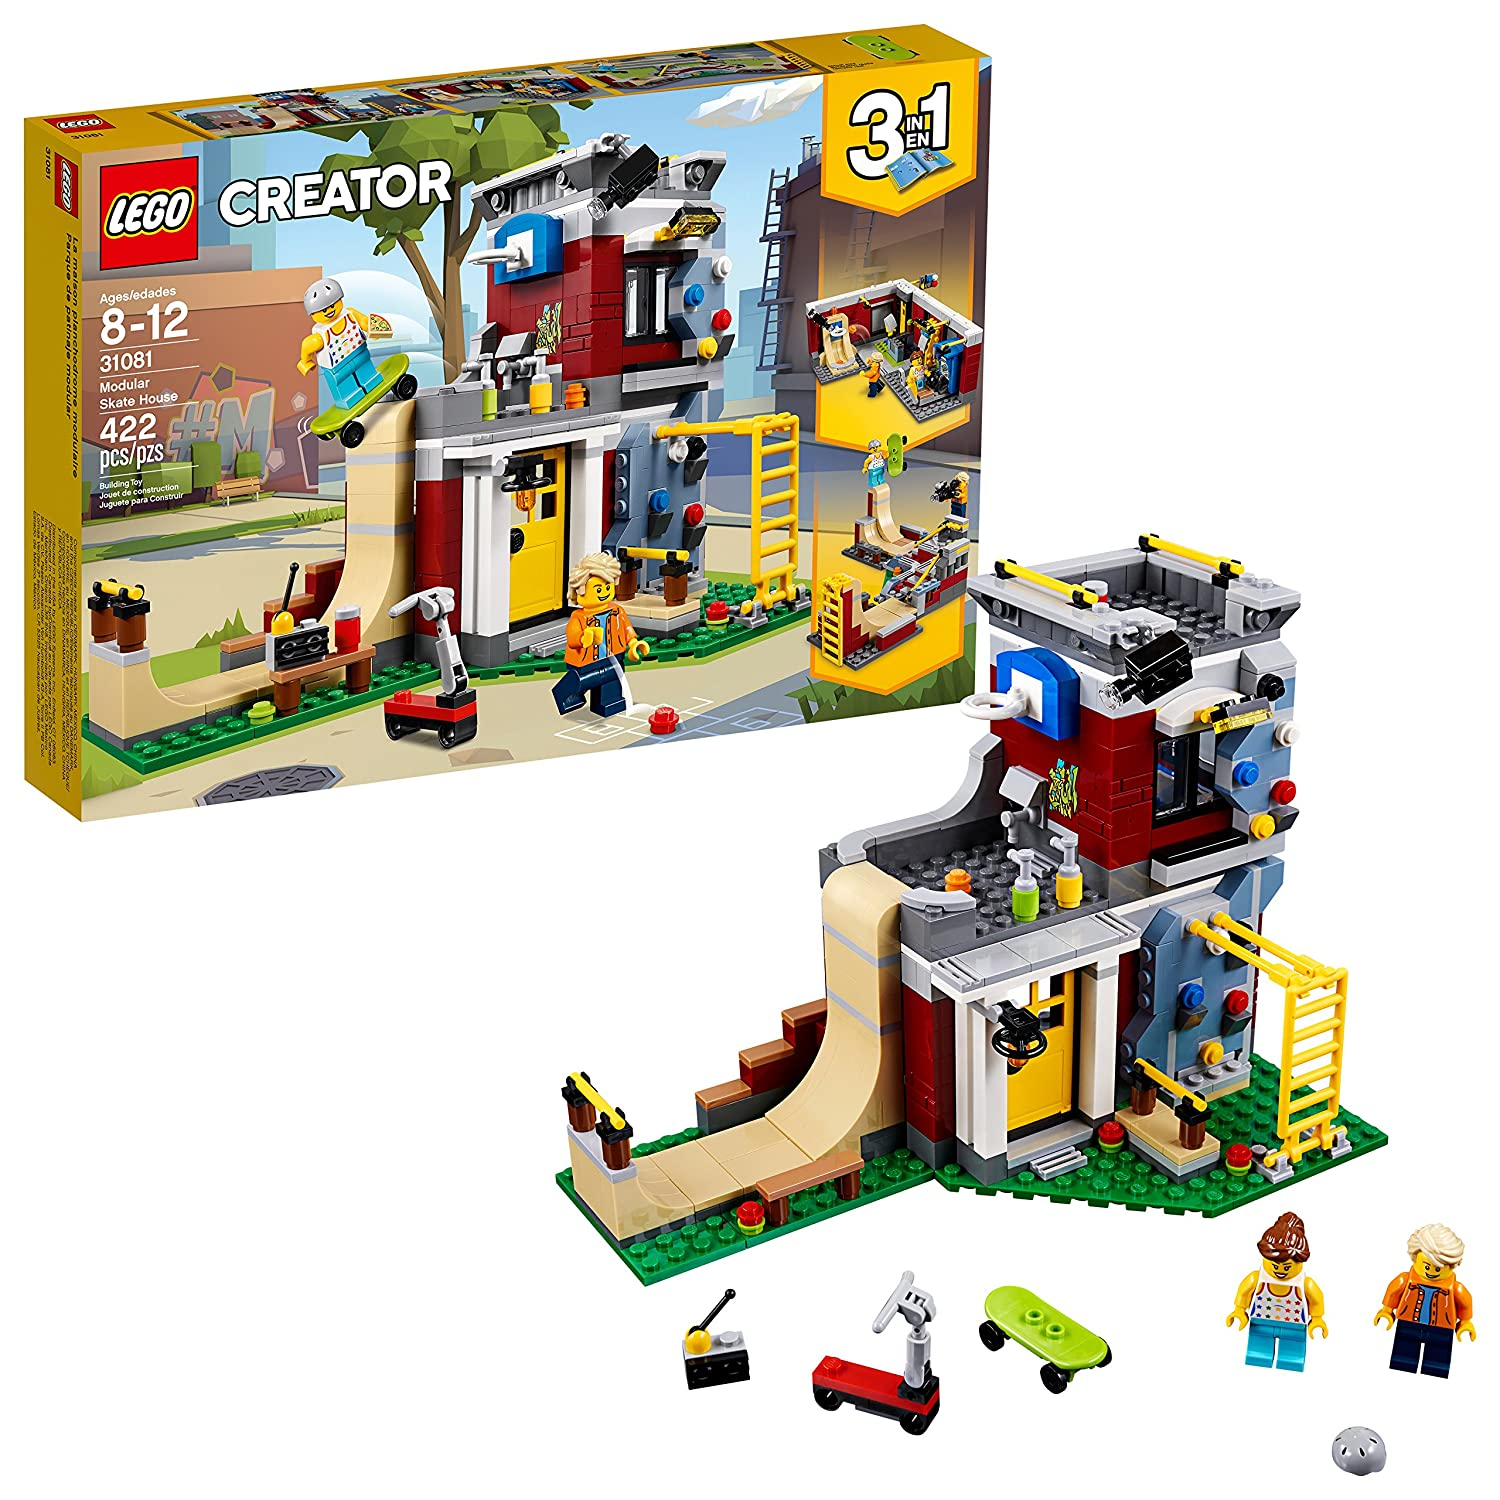 Lego Creator 6210174 Modular Skate House 31081 Building Kit (422 Piece)